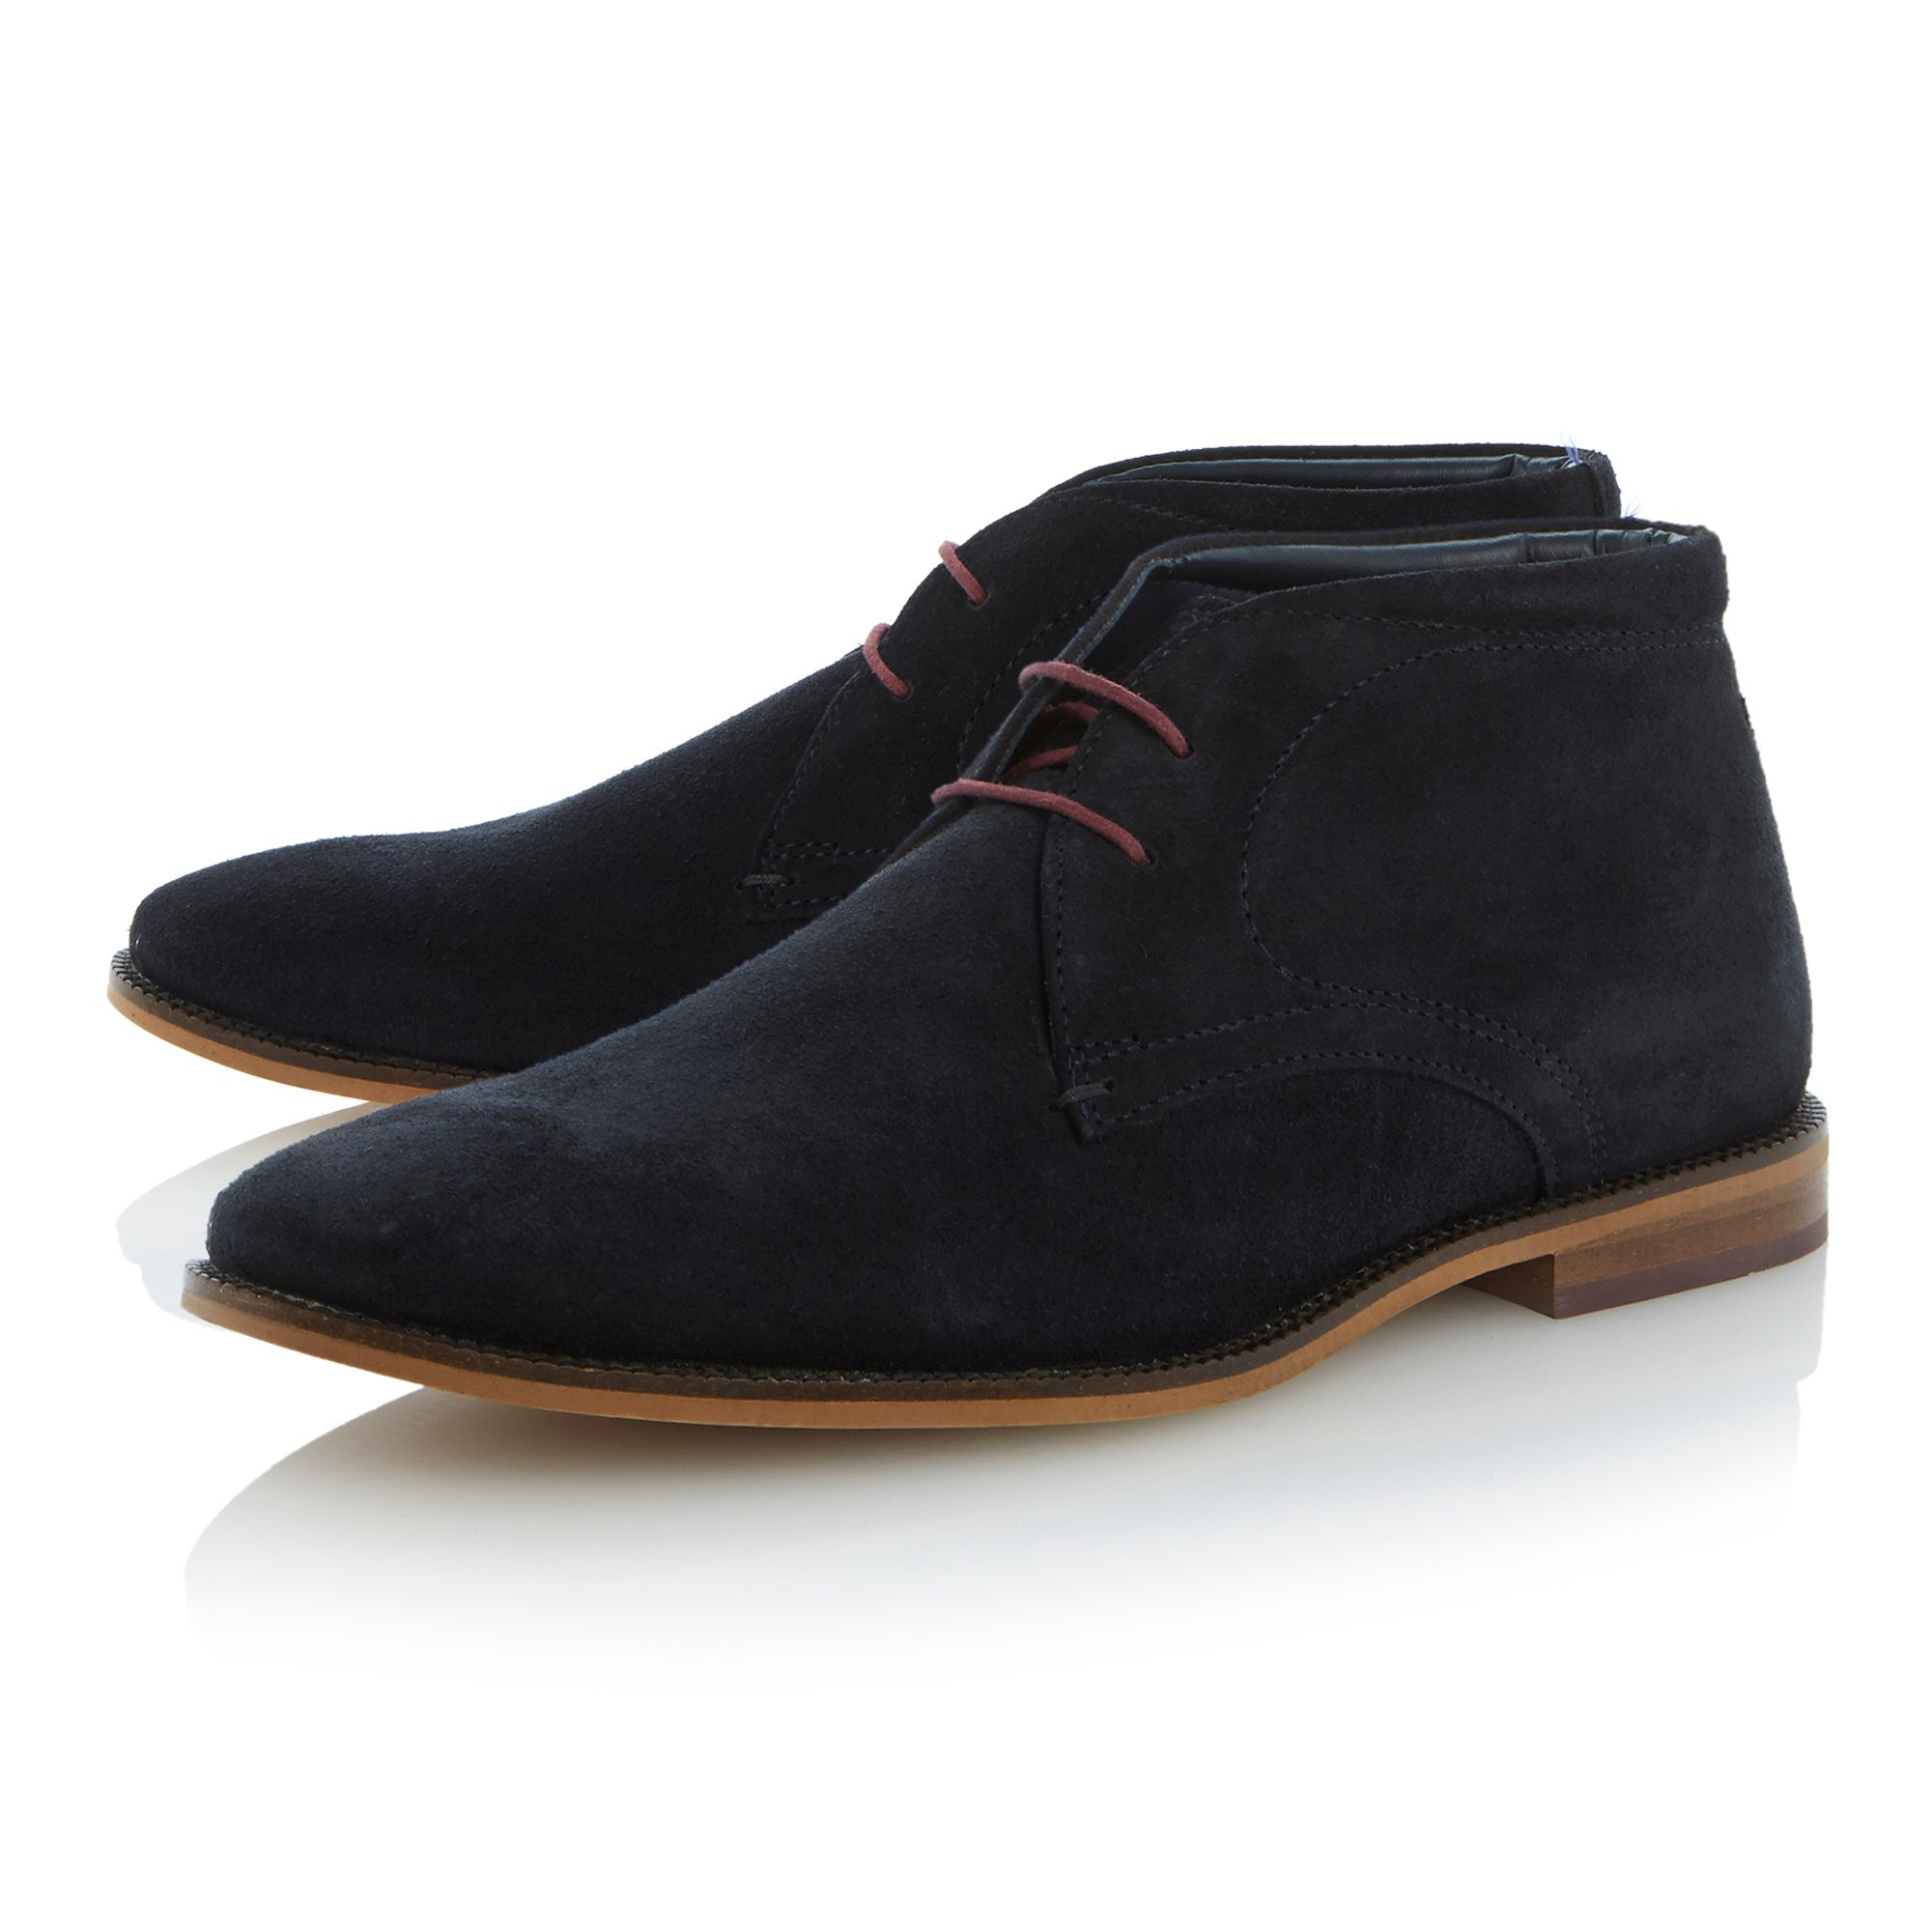 Clark lace up smart suede desert boots